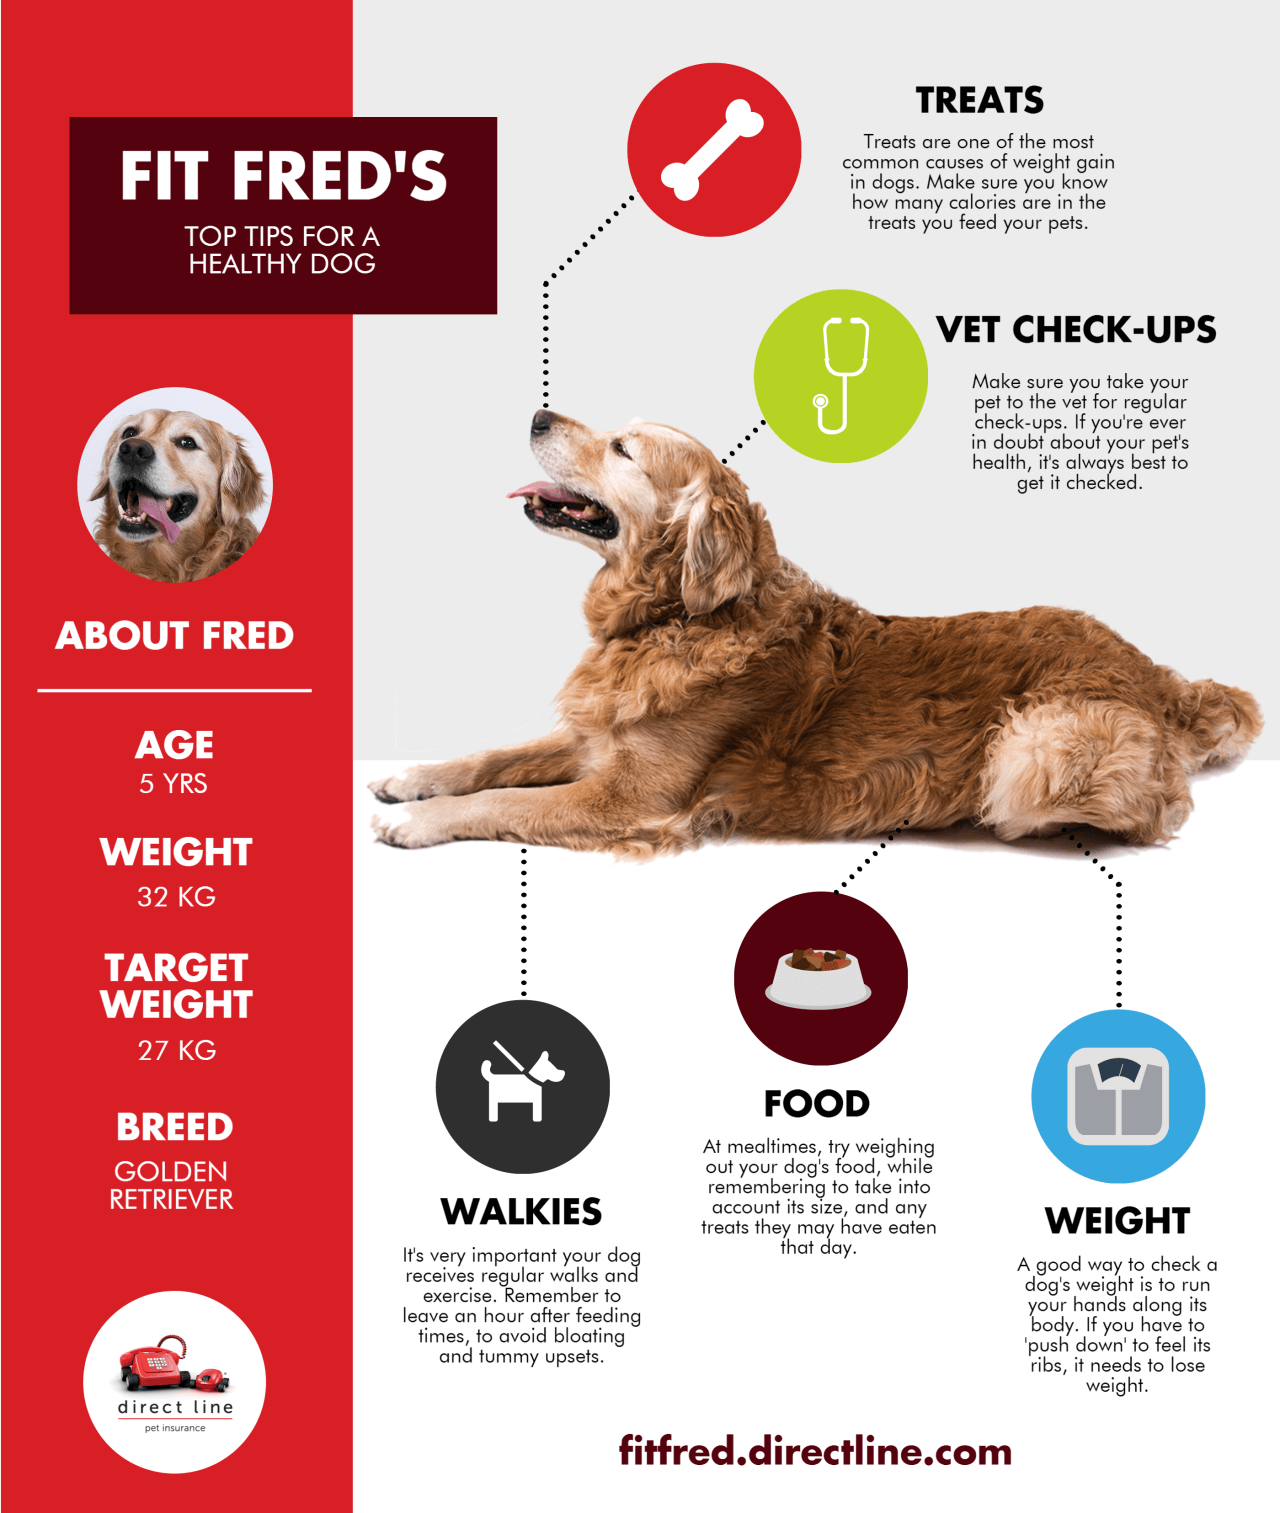 Top tips for a healthy dog infographic